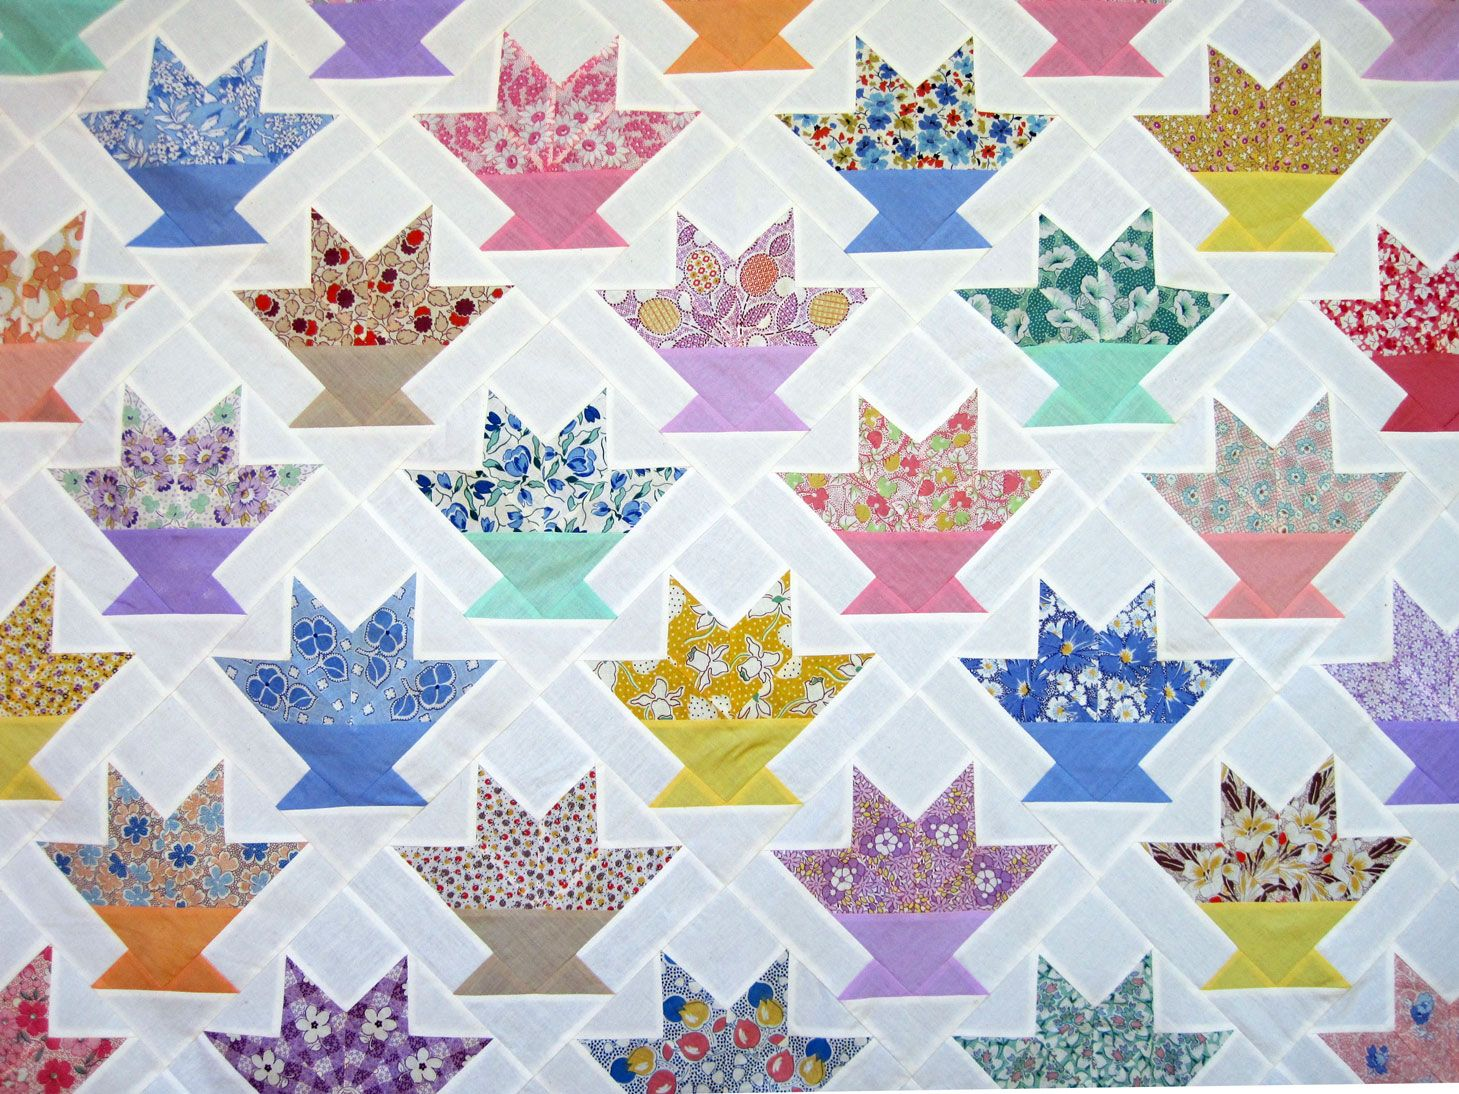 flower basket quilt pattern | is for Quilter » Blog Archive ... : basket quilts - Adamdwight.com